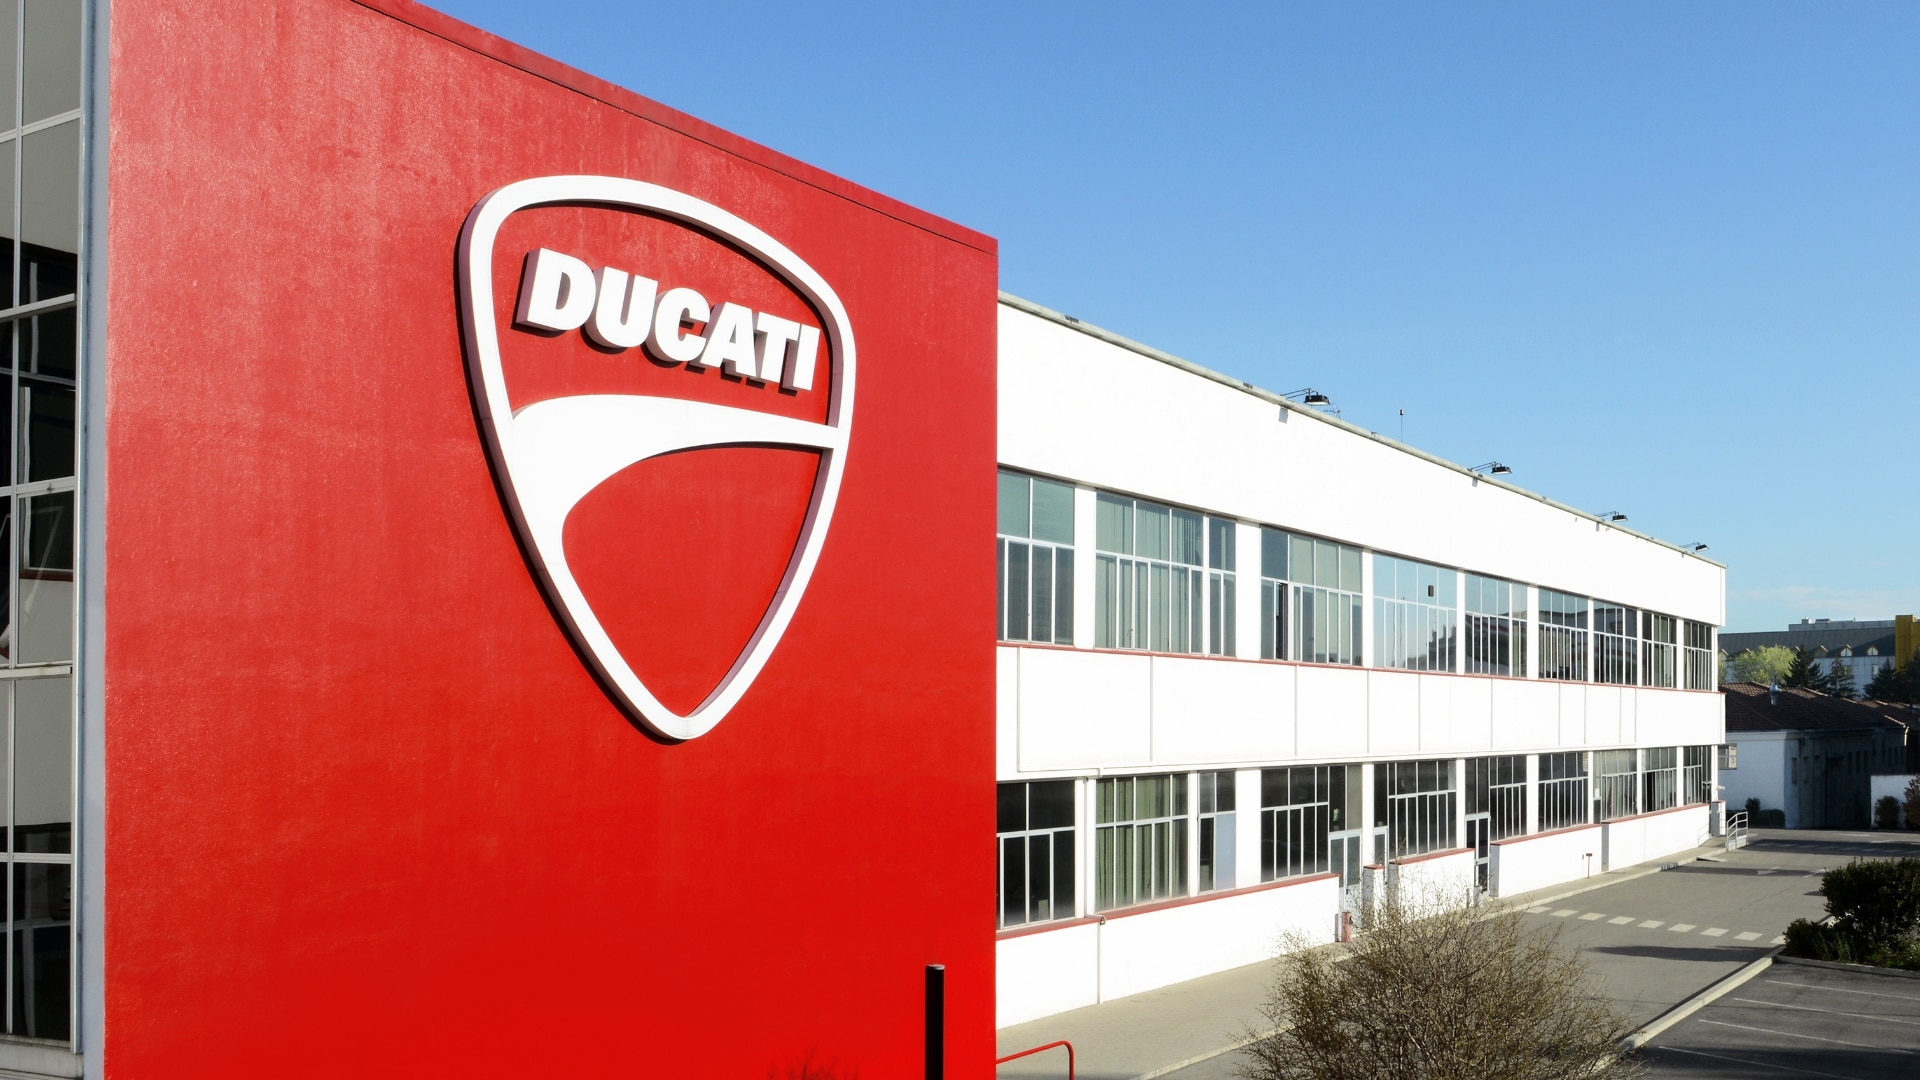 Ducati: Since 2016, a combined cooling, heat and power system has generated electricity, heating and cooling energy. The electric power produced using this plant meets around 80 percent of the Bologna Ducati site's total demand. In the first year alone, this saved more than 2,000 metric tons of CO₂ from being emitted. This reduction is equivalent to the amount generated by a person flying from Munich to Sydney and back around 300 times.